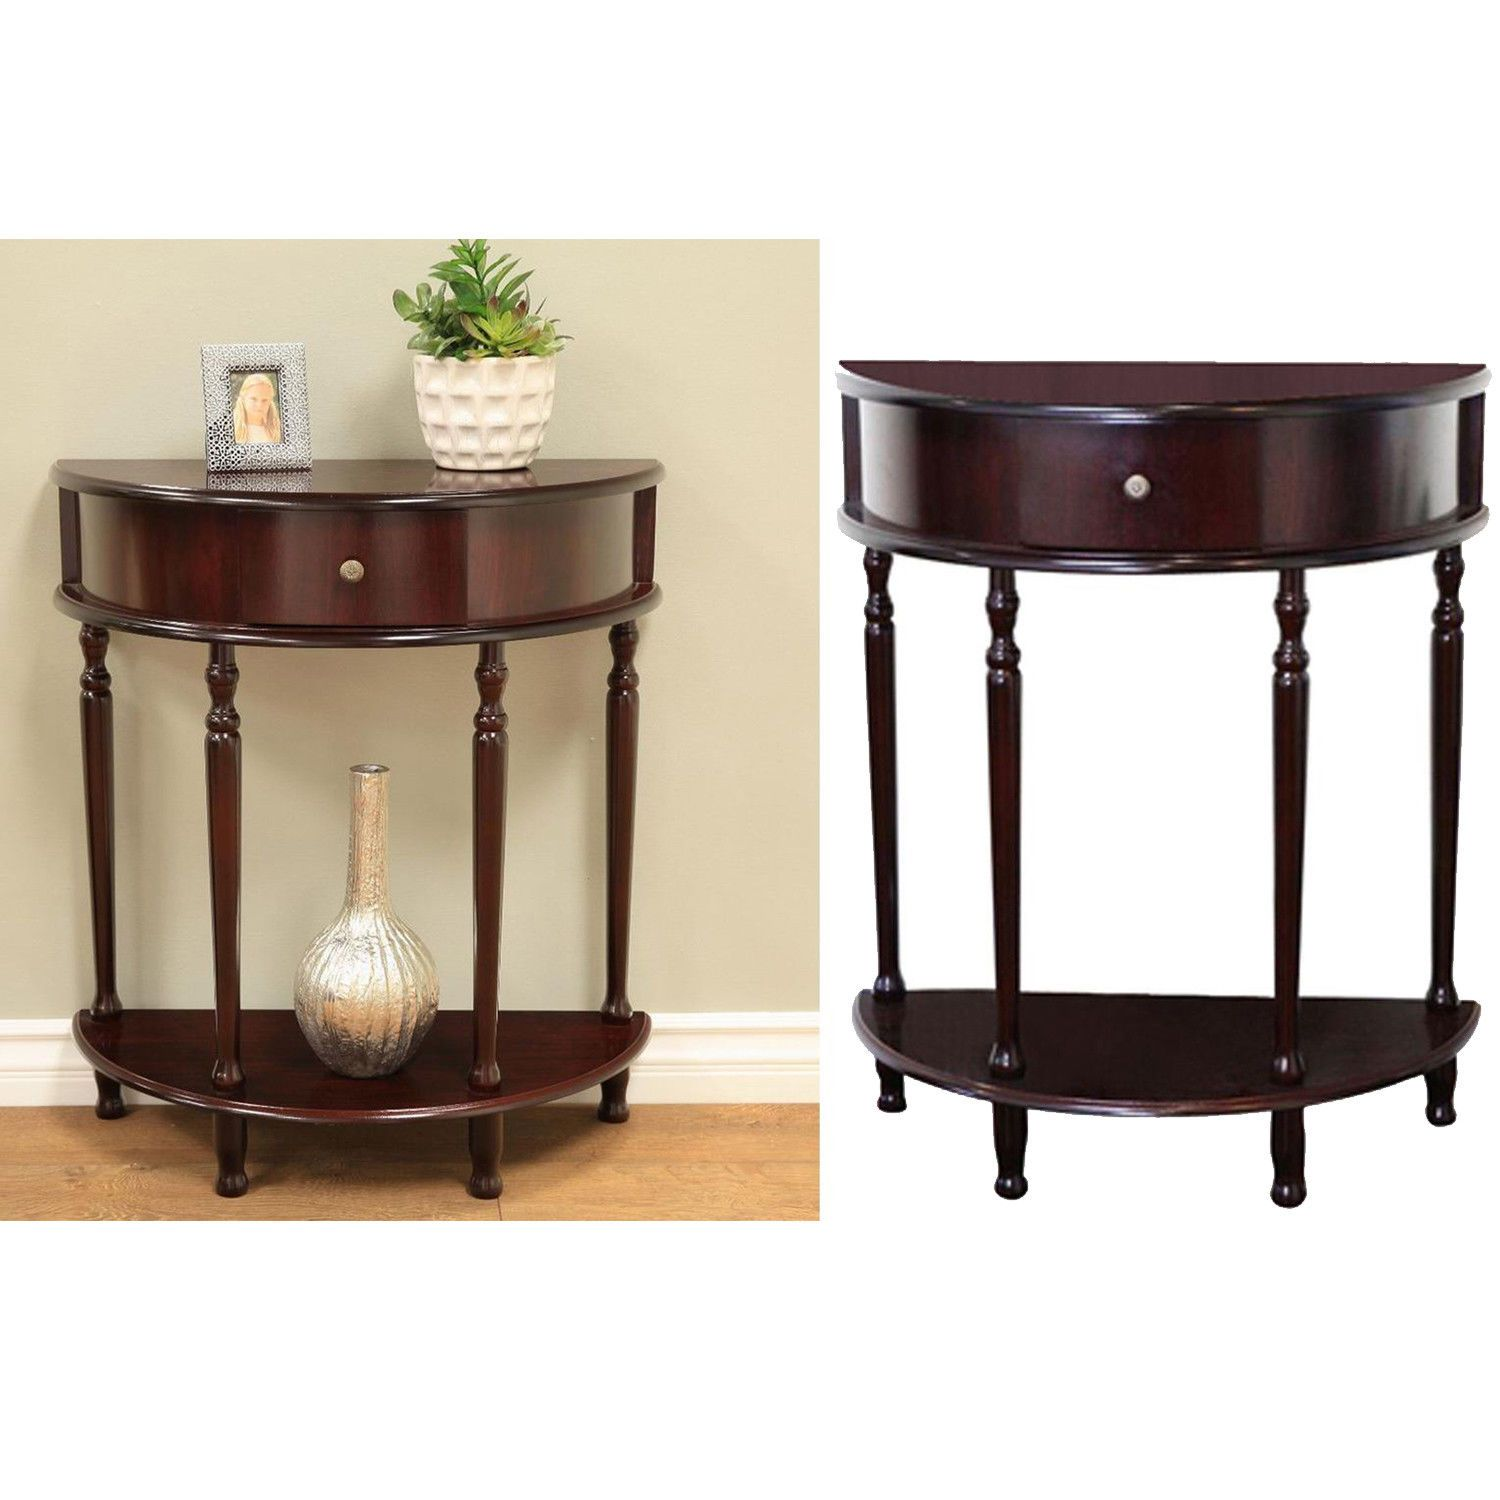 entryway console table half moon accent modern living room furniture hall decor round oak couch tray ikea ott hobby lobby end tables target kids folding wood coffee comfy garden